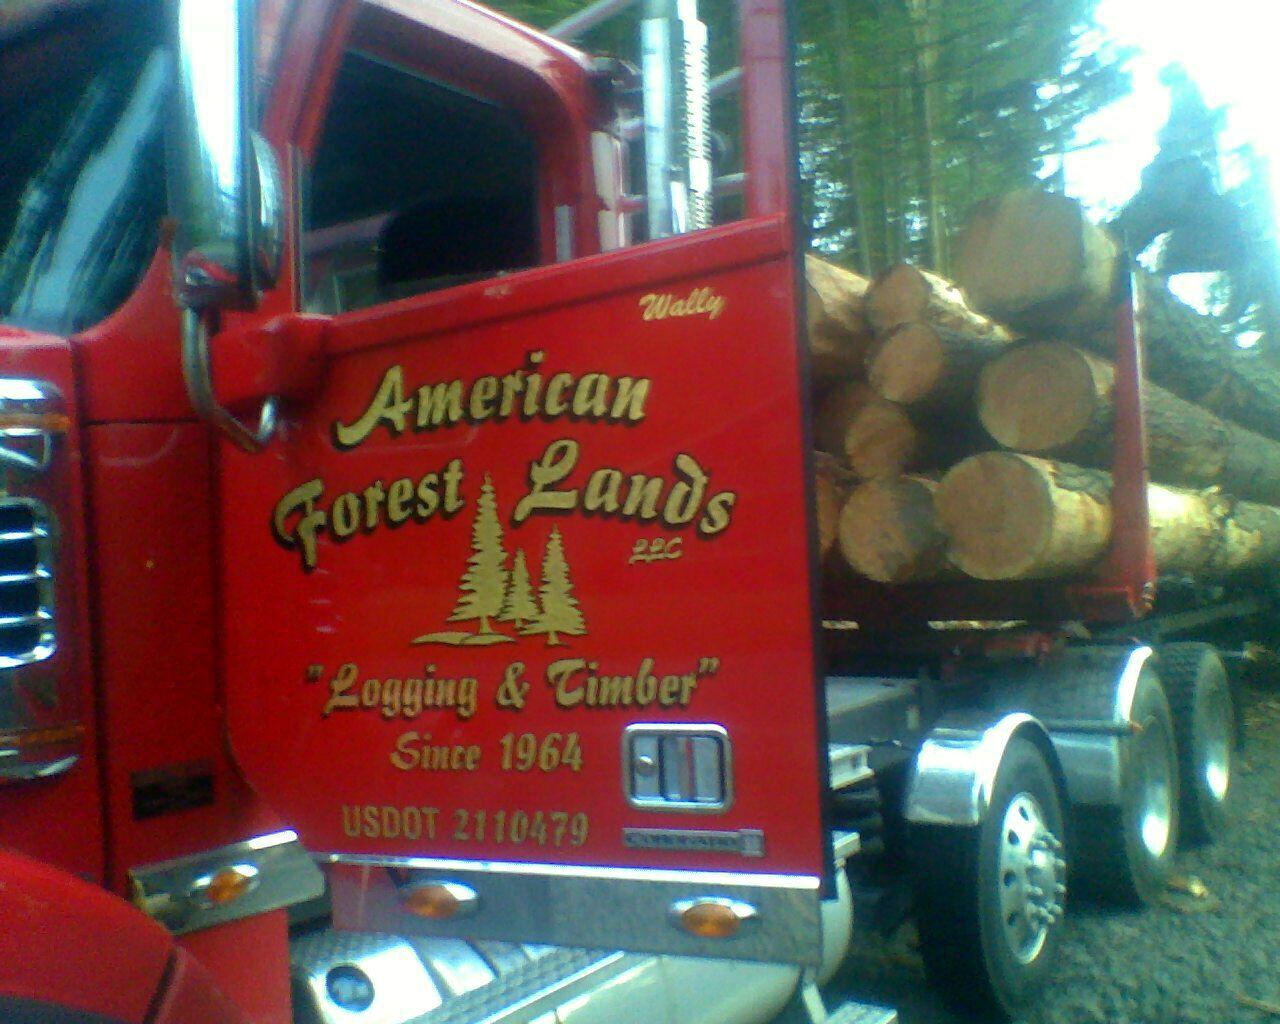 Our Logging Company offers timber harvesting, tree logging and trucking services in King County, Pierce, Thurston, Lewis County, Mason, Kitsap, Snohomish and Island Counties. Export timber, Domestic logs- we handle that! If you have standing timber in Puge